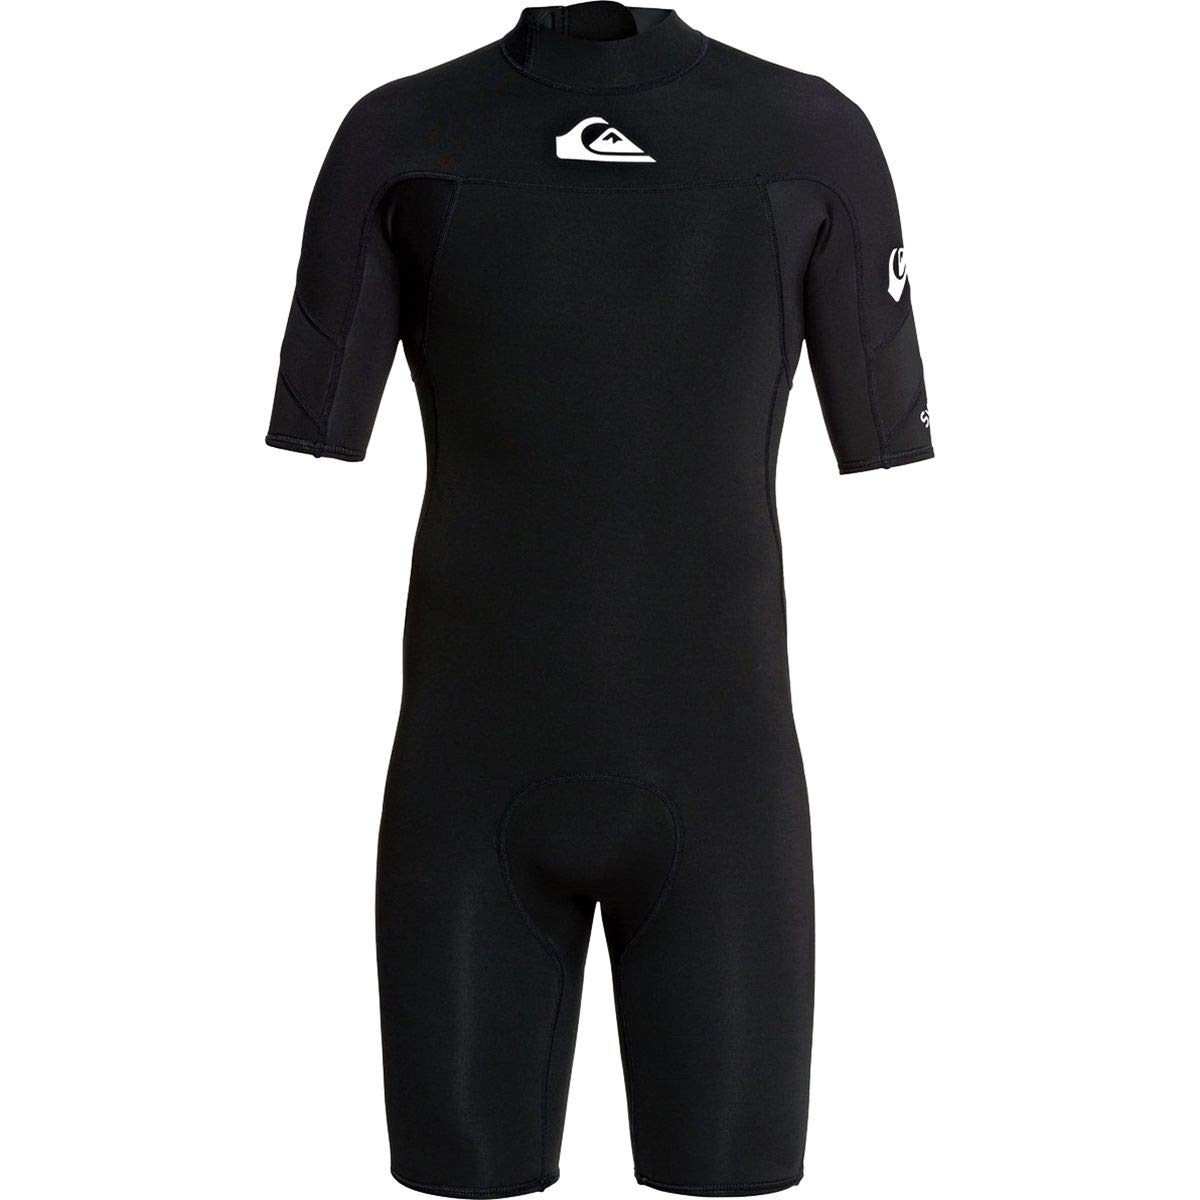 Quiksilver Mens 2/2Mm Syncro - Short Sleeve Back Zip Flt Springsuit Short Sleeve Back Zip Flt Springsuit Black L by Quiksilver